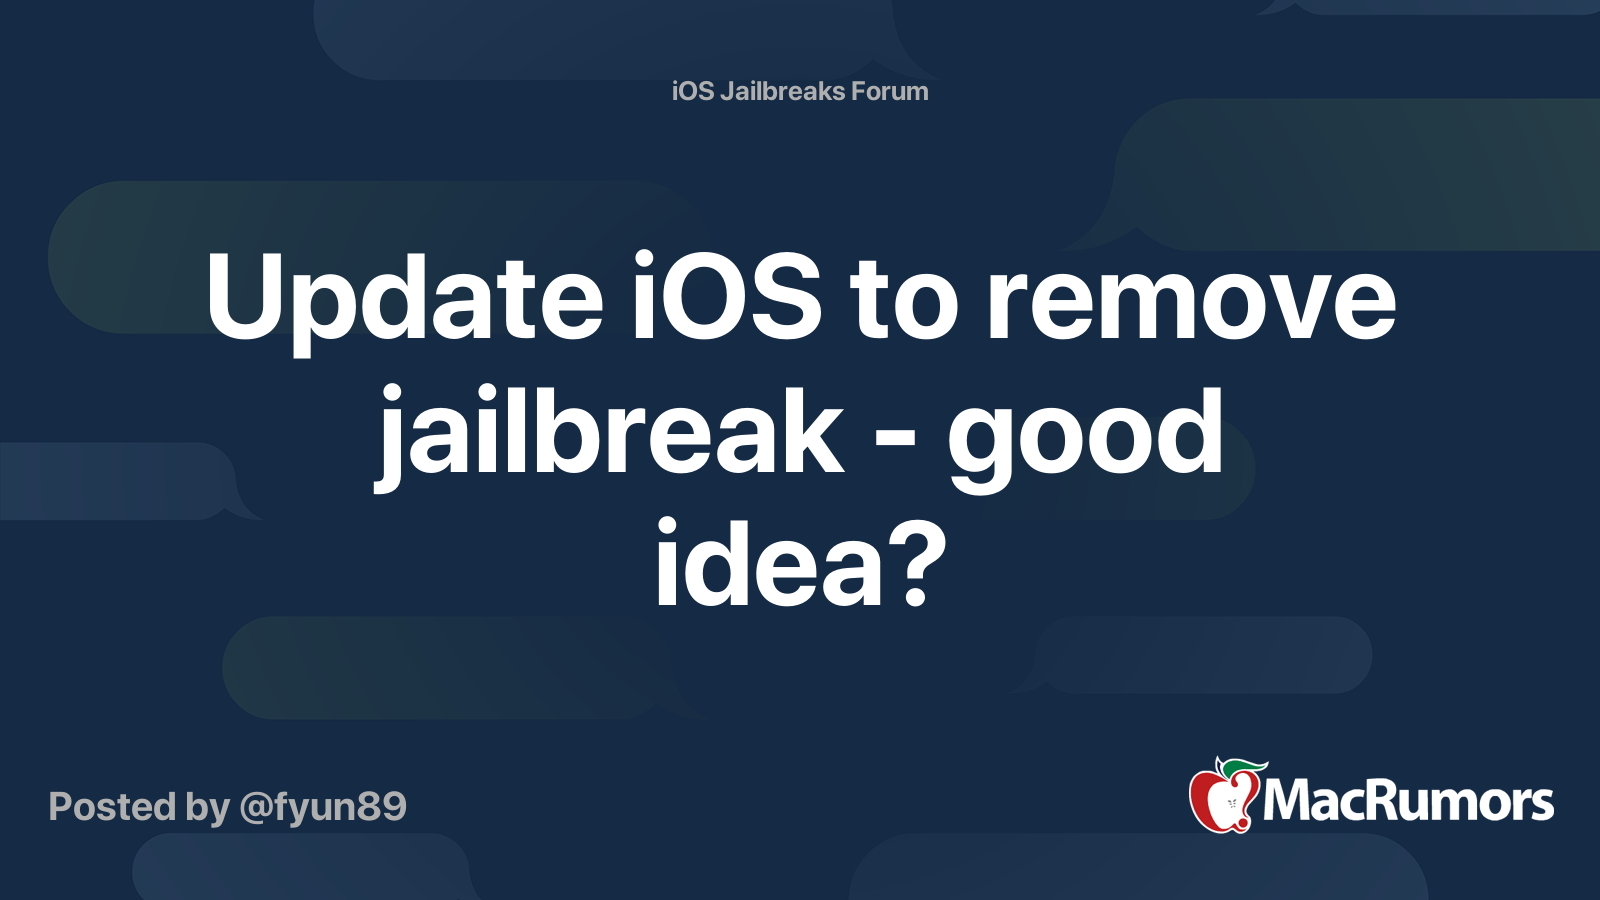 will updating iphone remove jailbreak